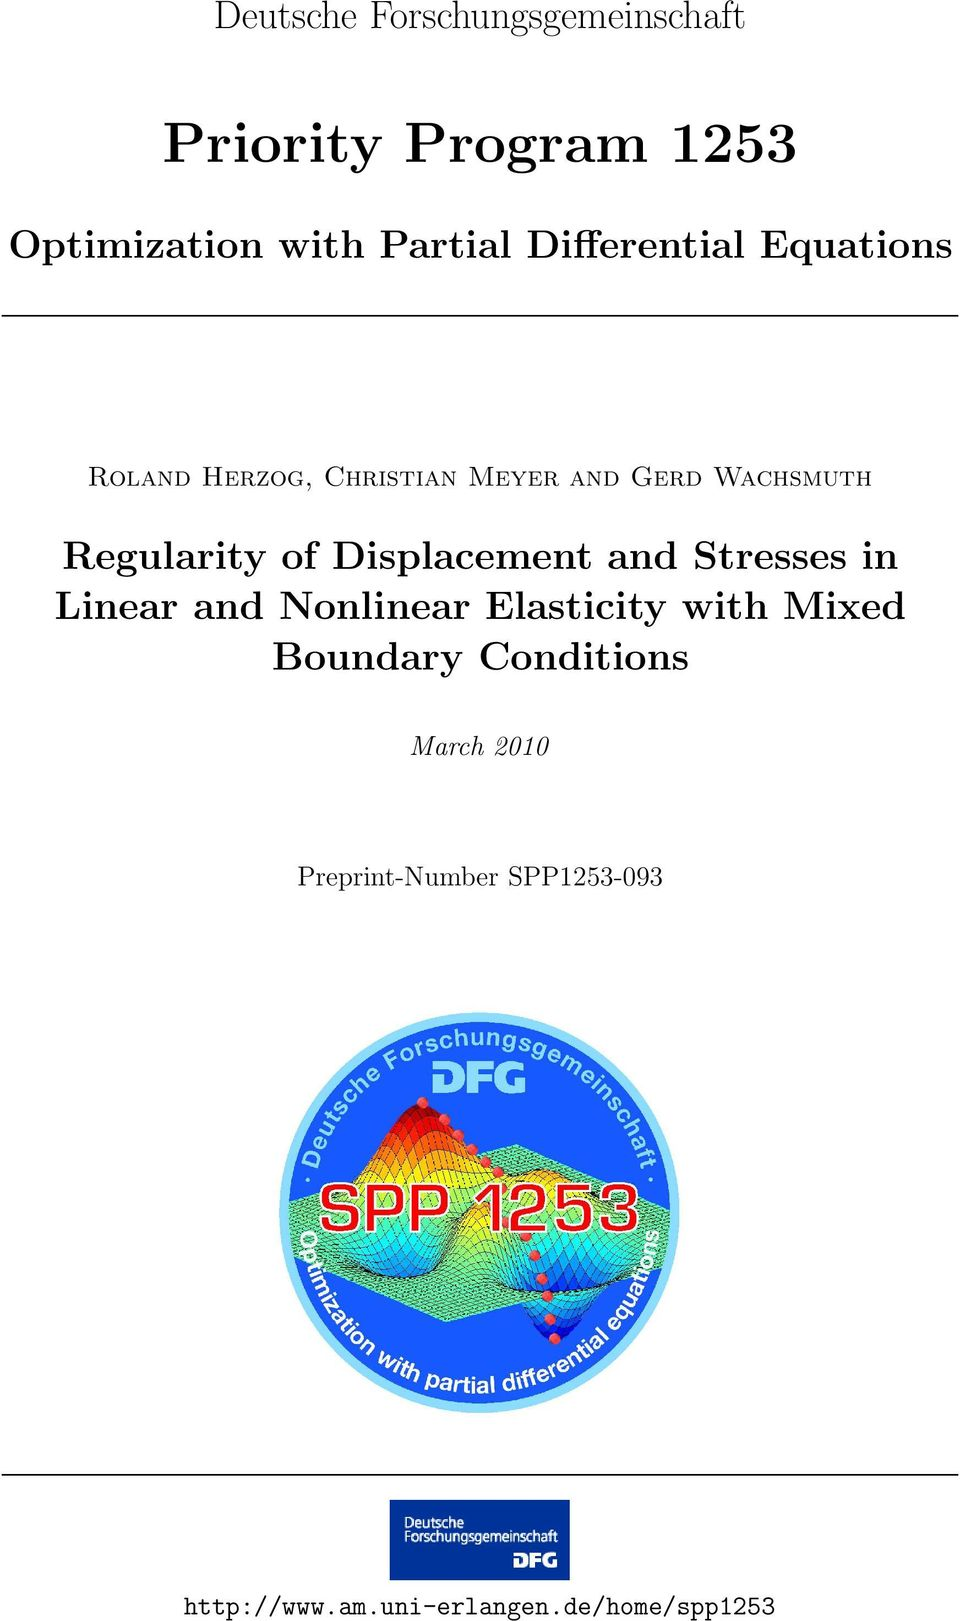 of isplacement and Stresses in Linear and Nonlinear Elasticity with Mixed Boundary